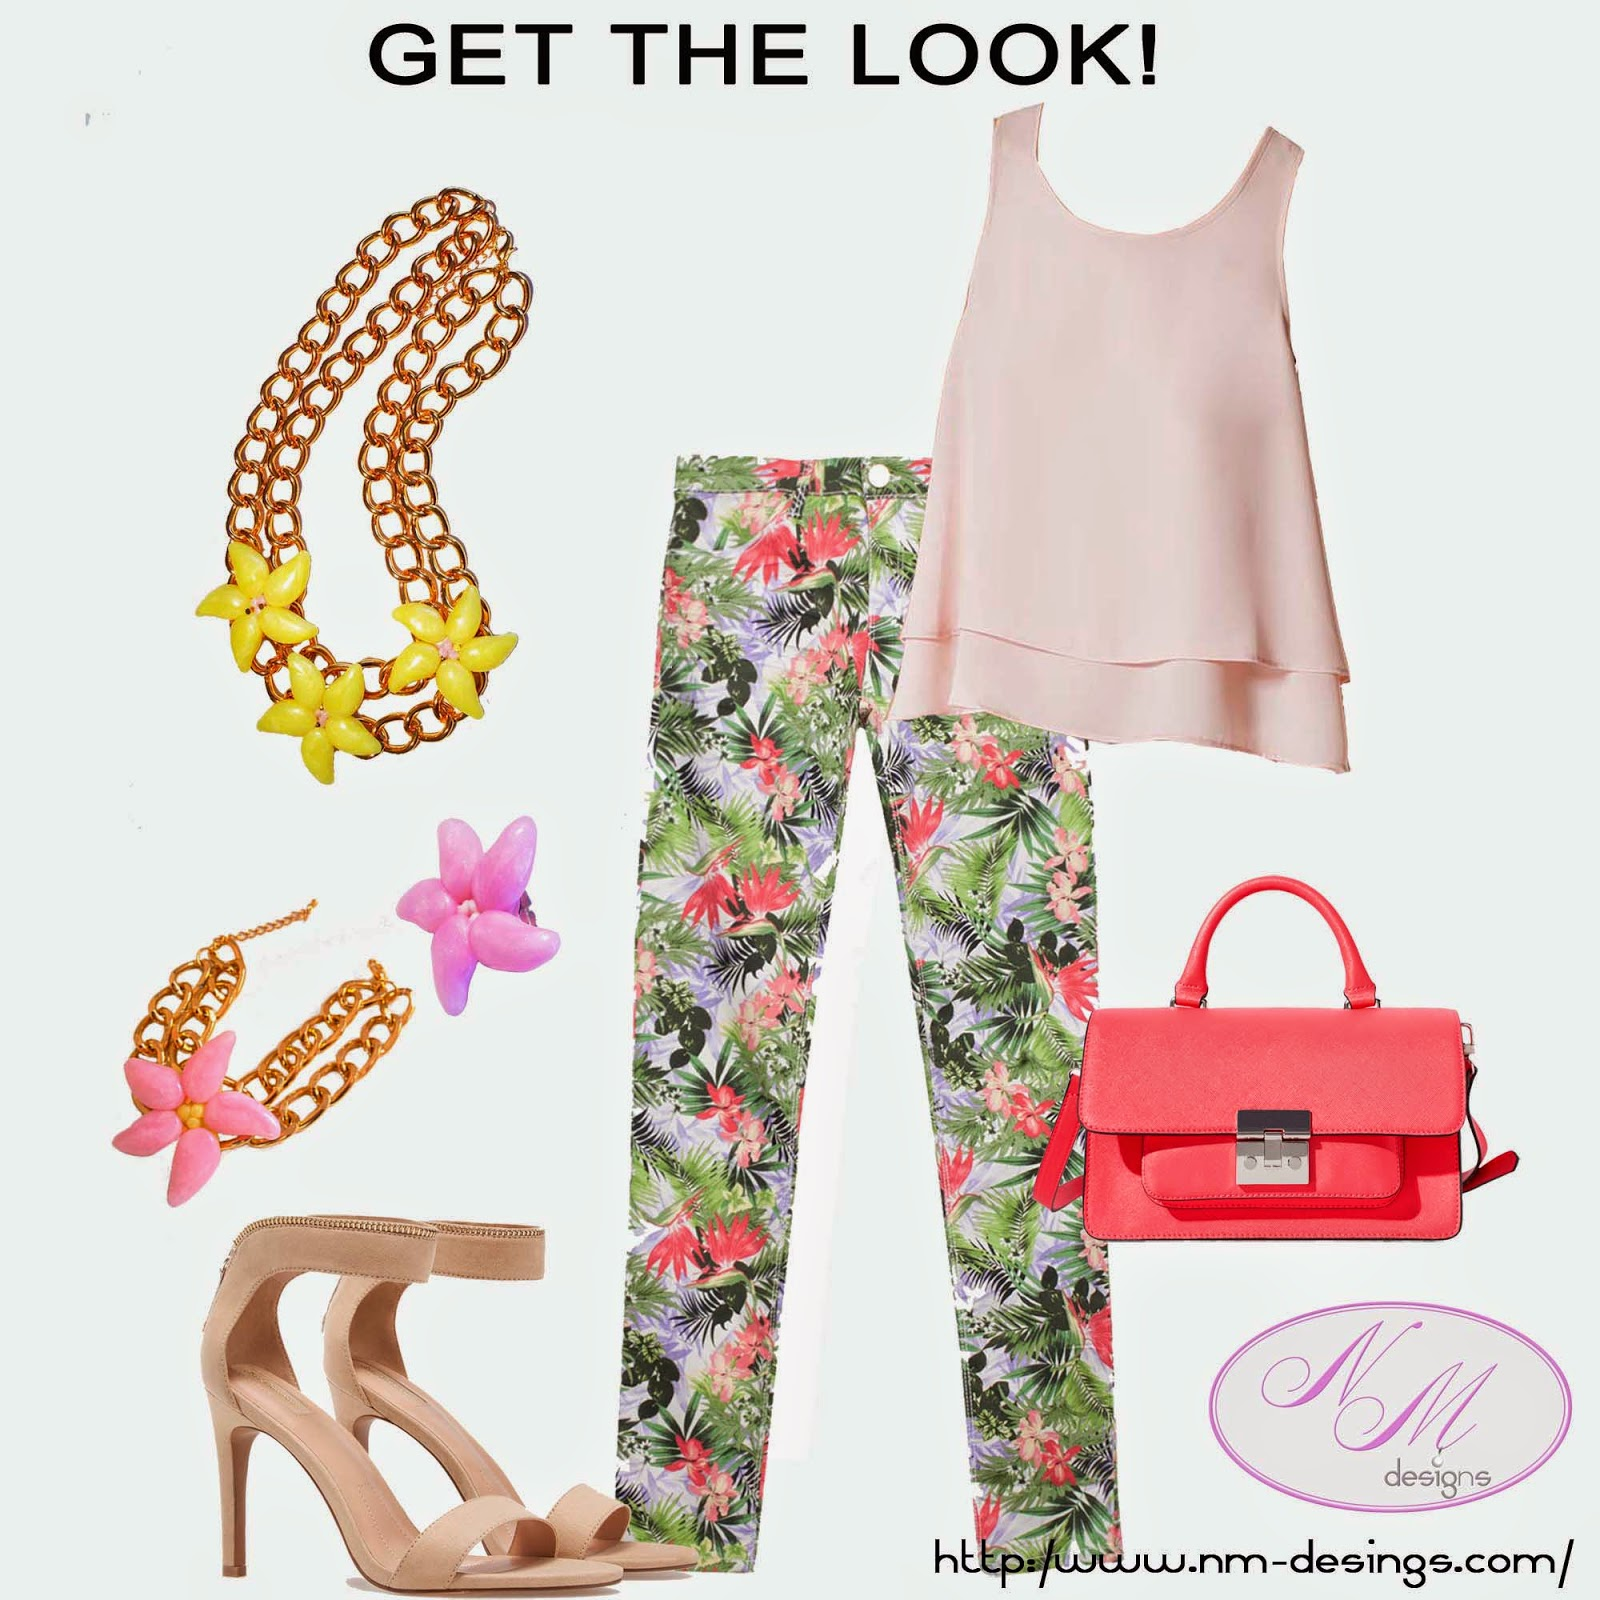 GET THE LOOK FROM 11TH JUNE 14